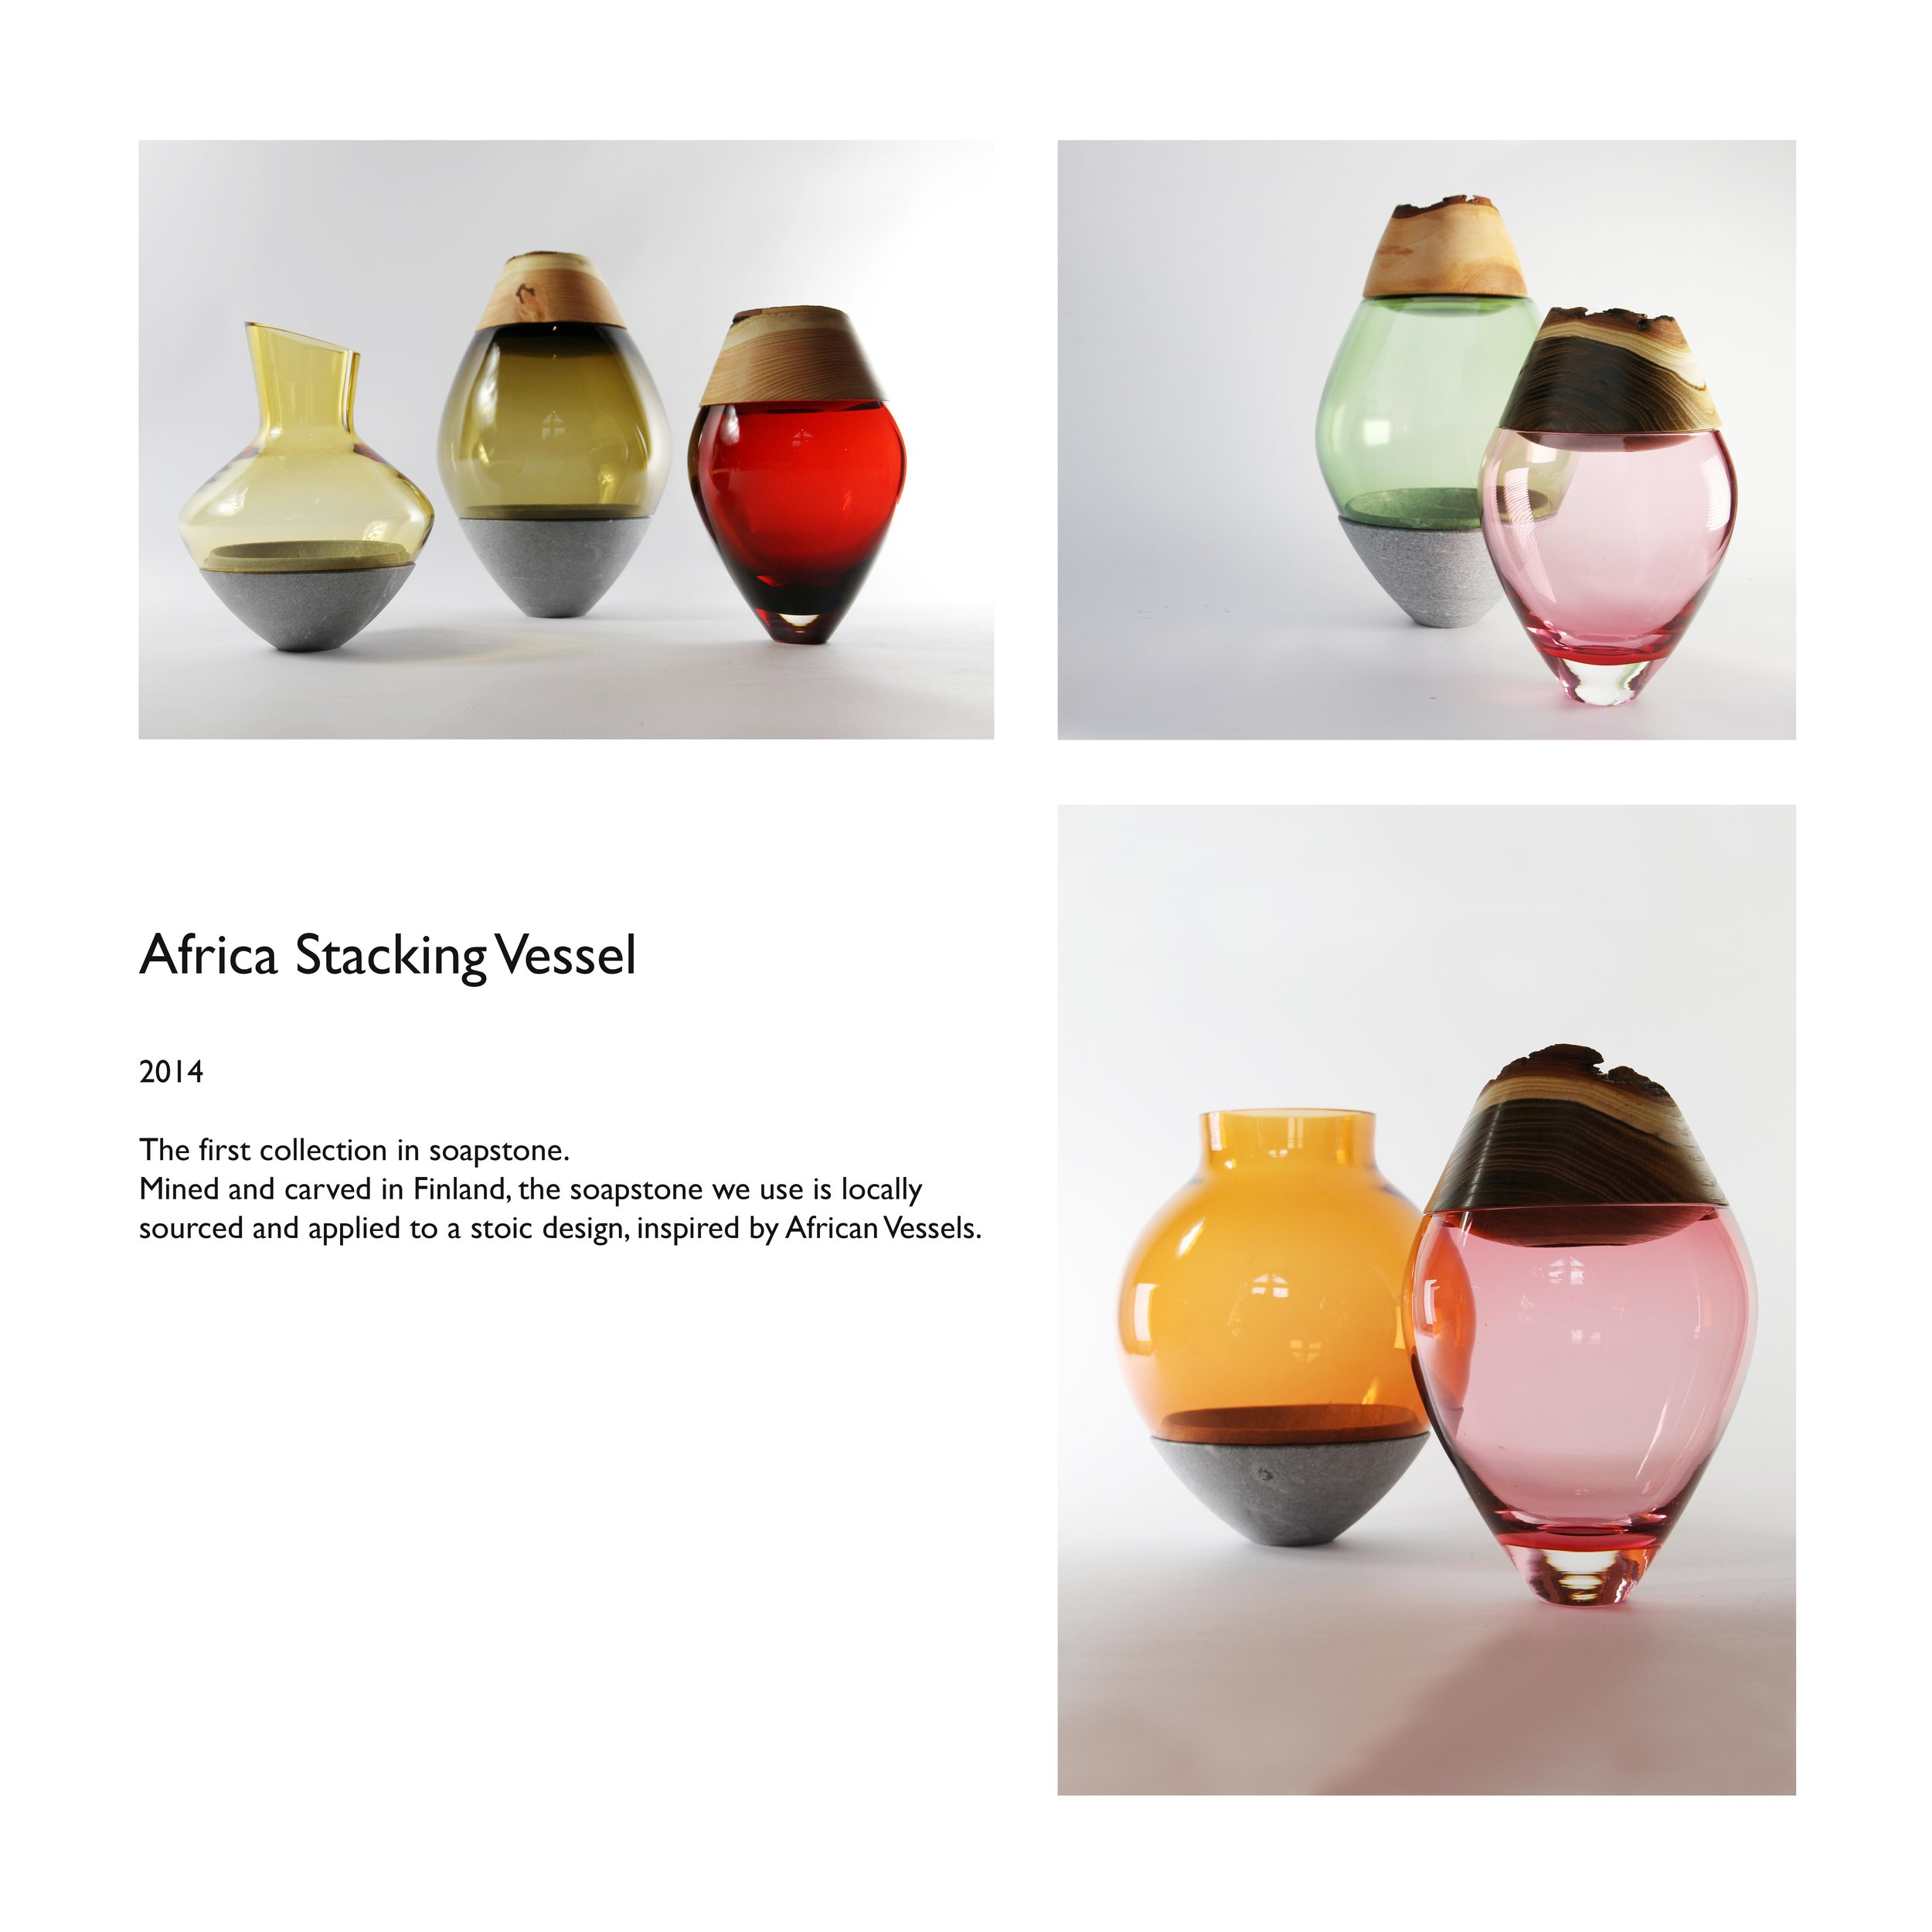 Africa Stacking Vessel soapstone